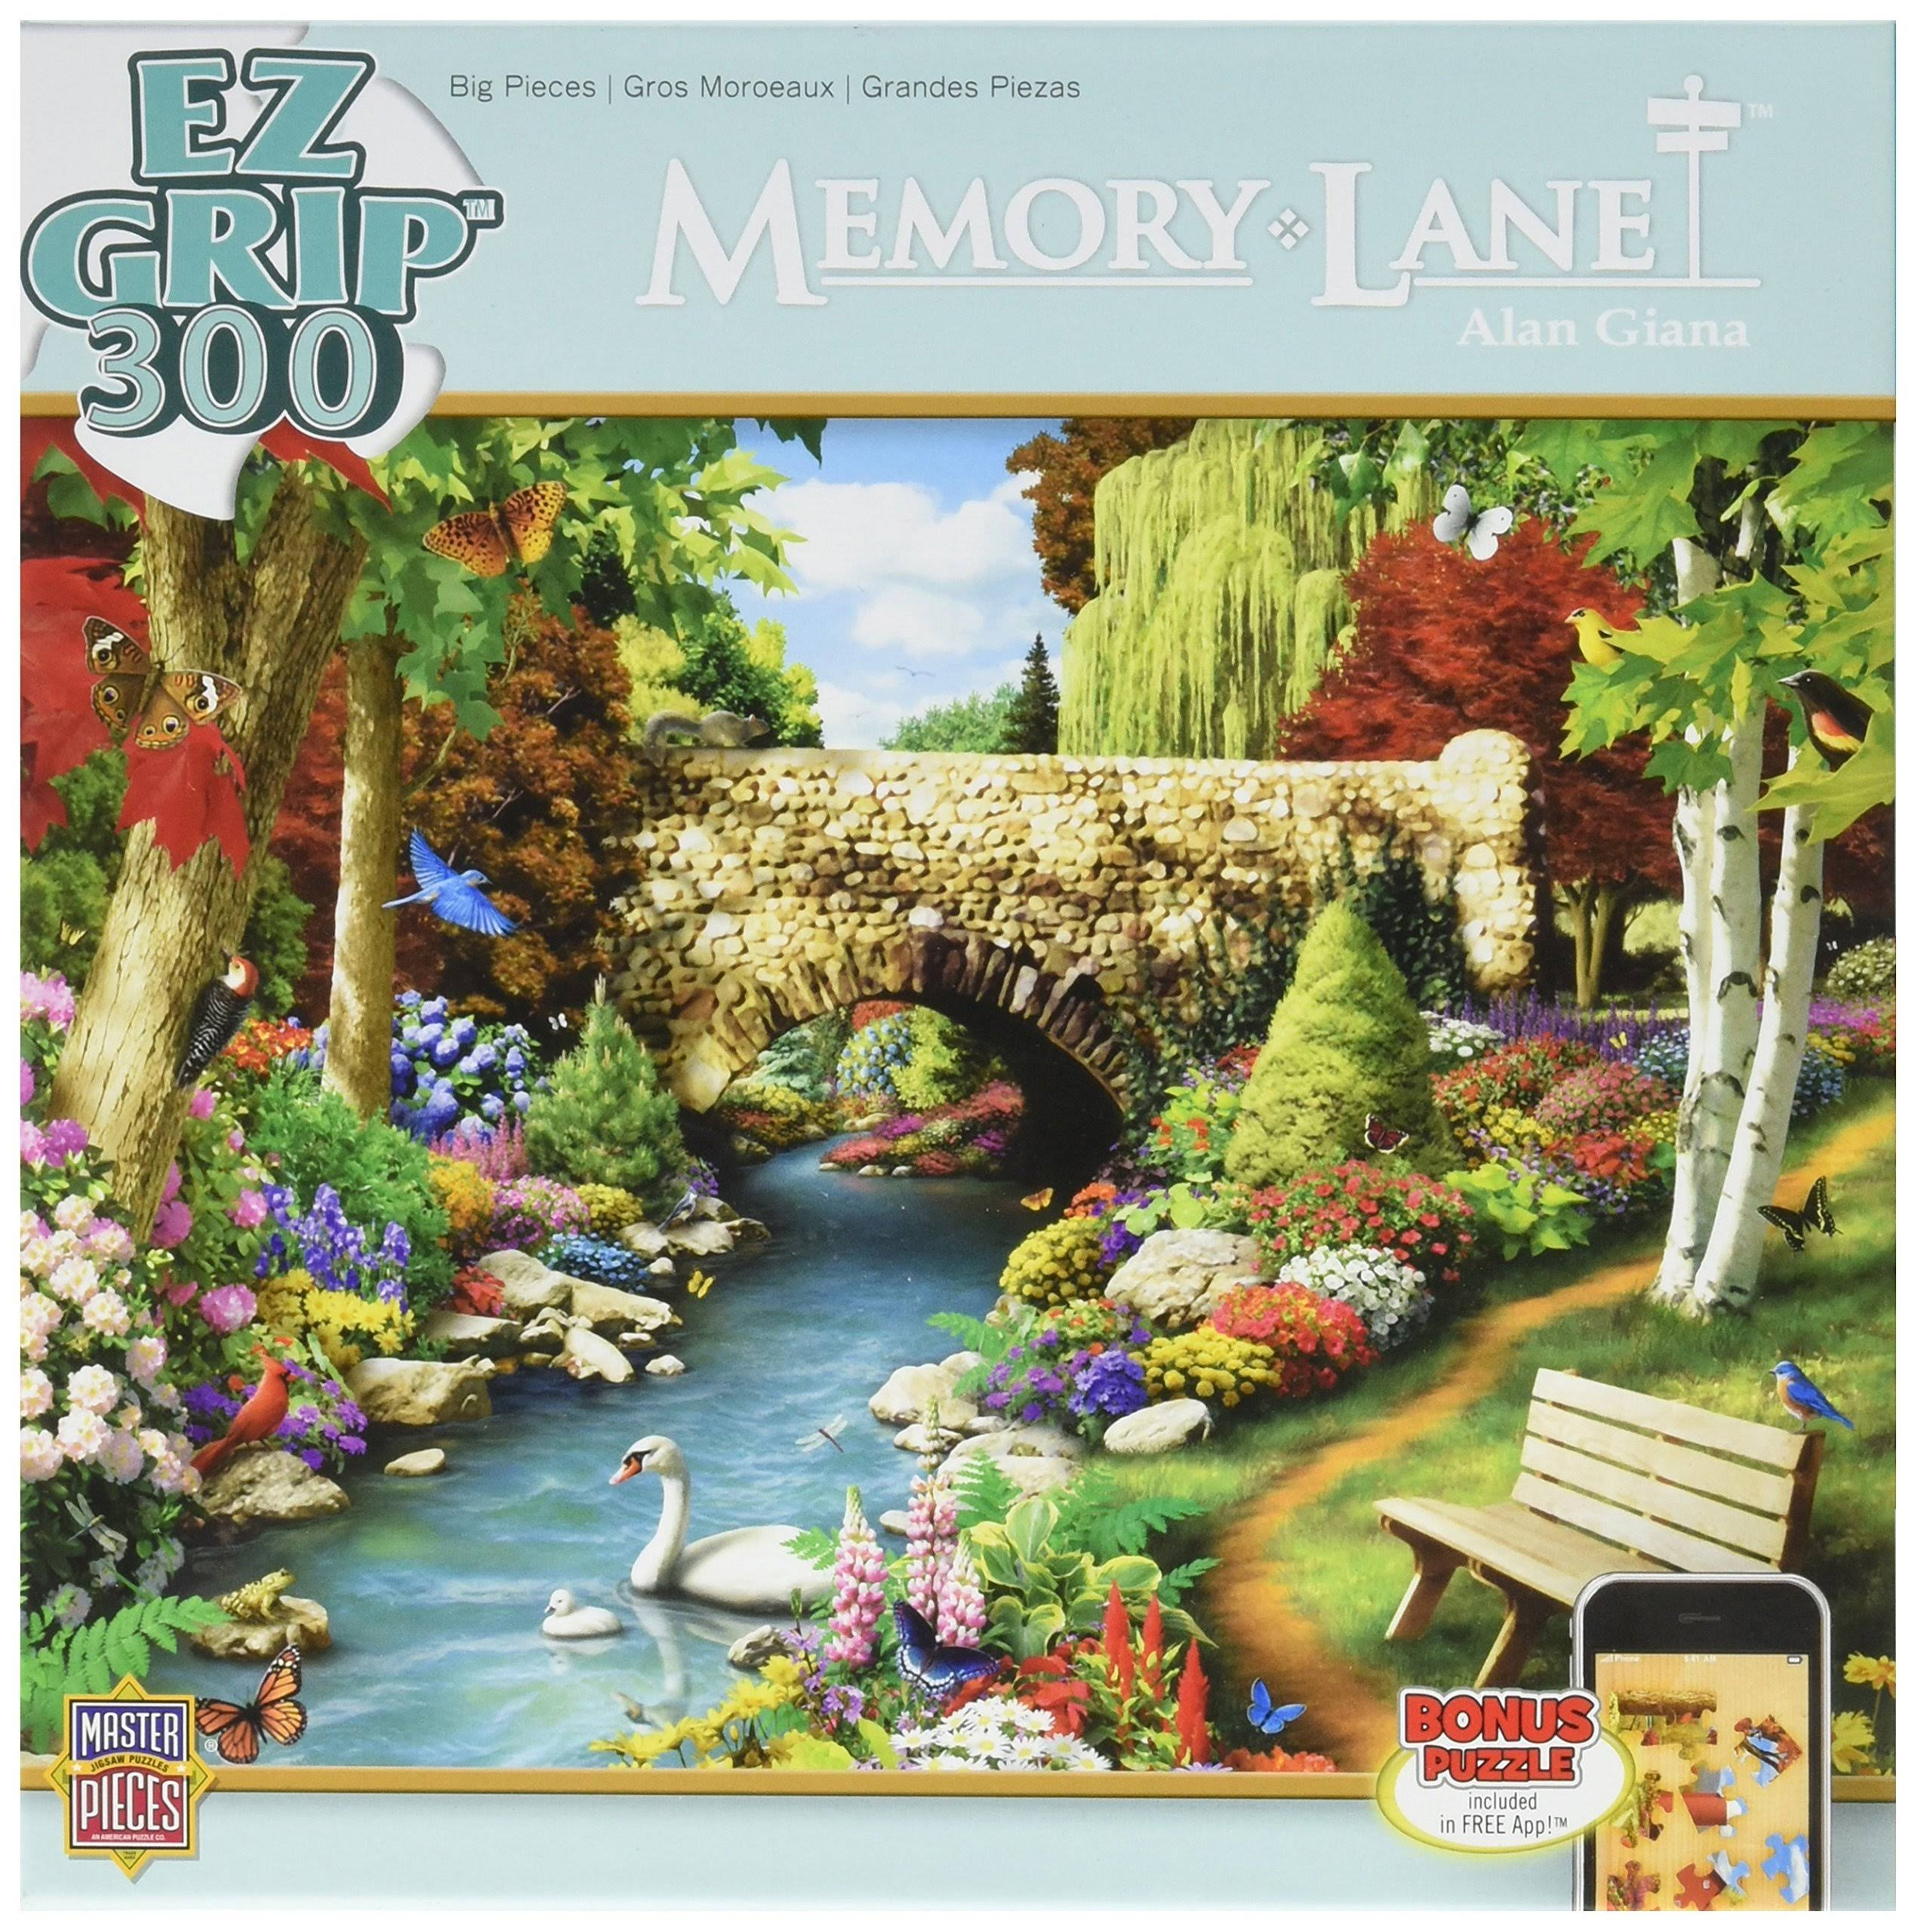 Master Pieces Memory Lane Willow Whispers Alan Giana Jigsaw Puzzle - 300pcs